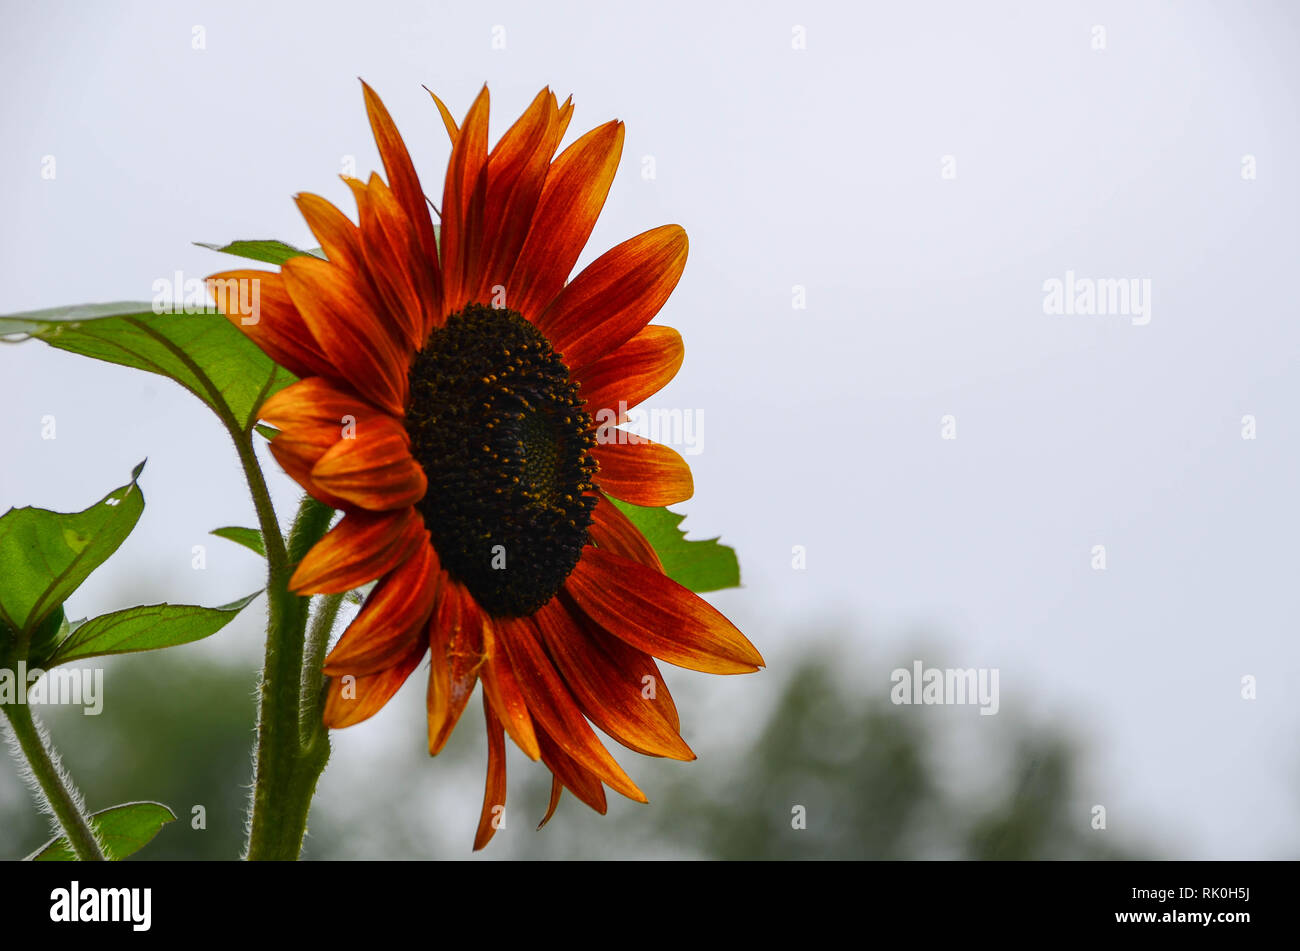 Side view of a sunflower - Stock Image